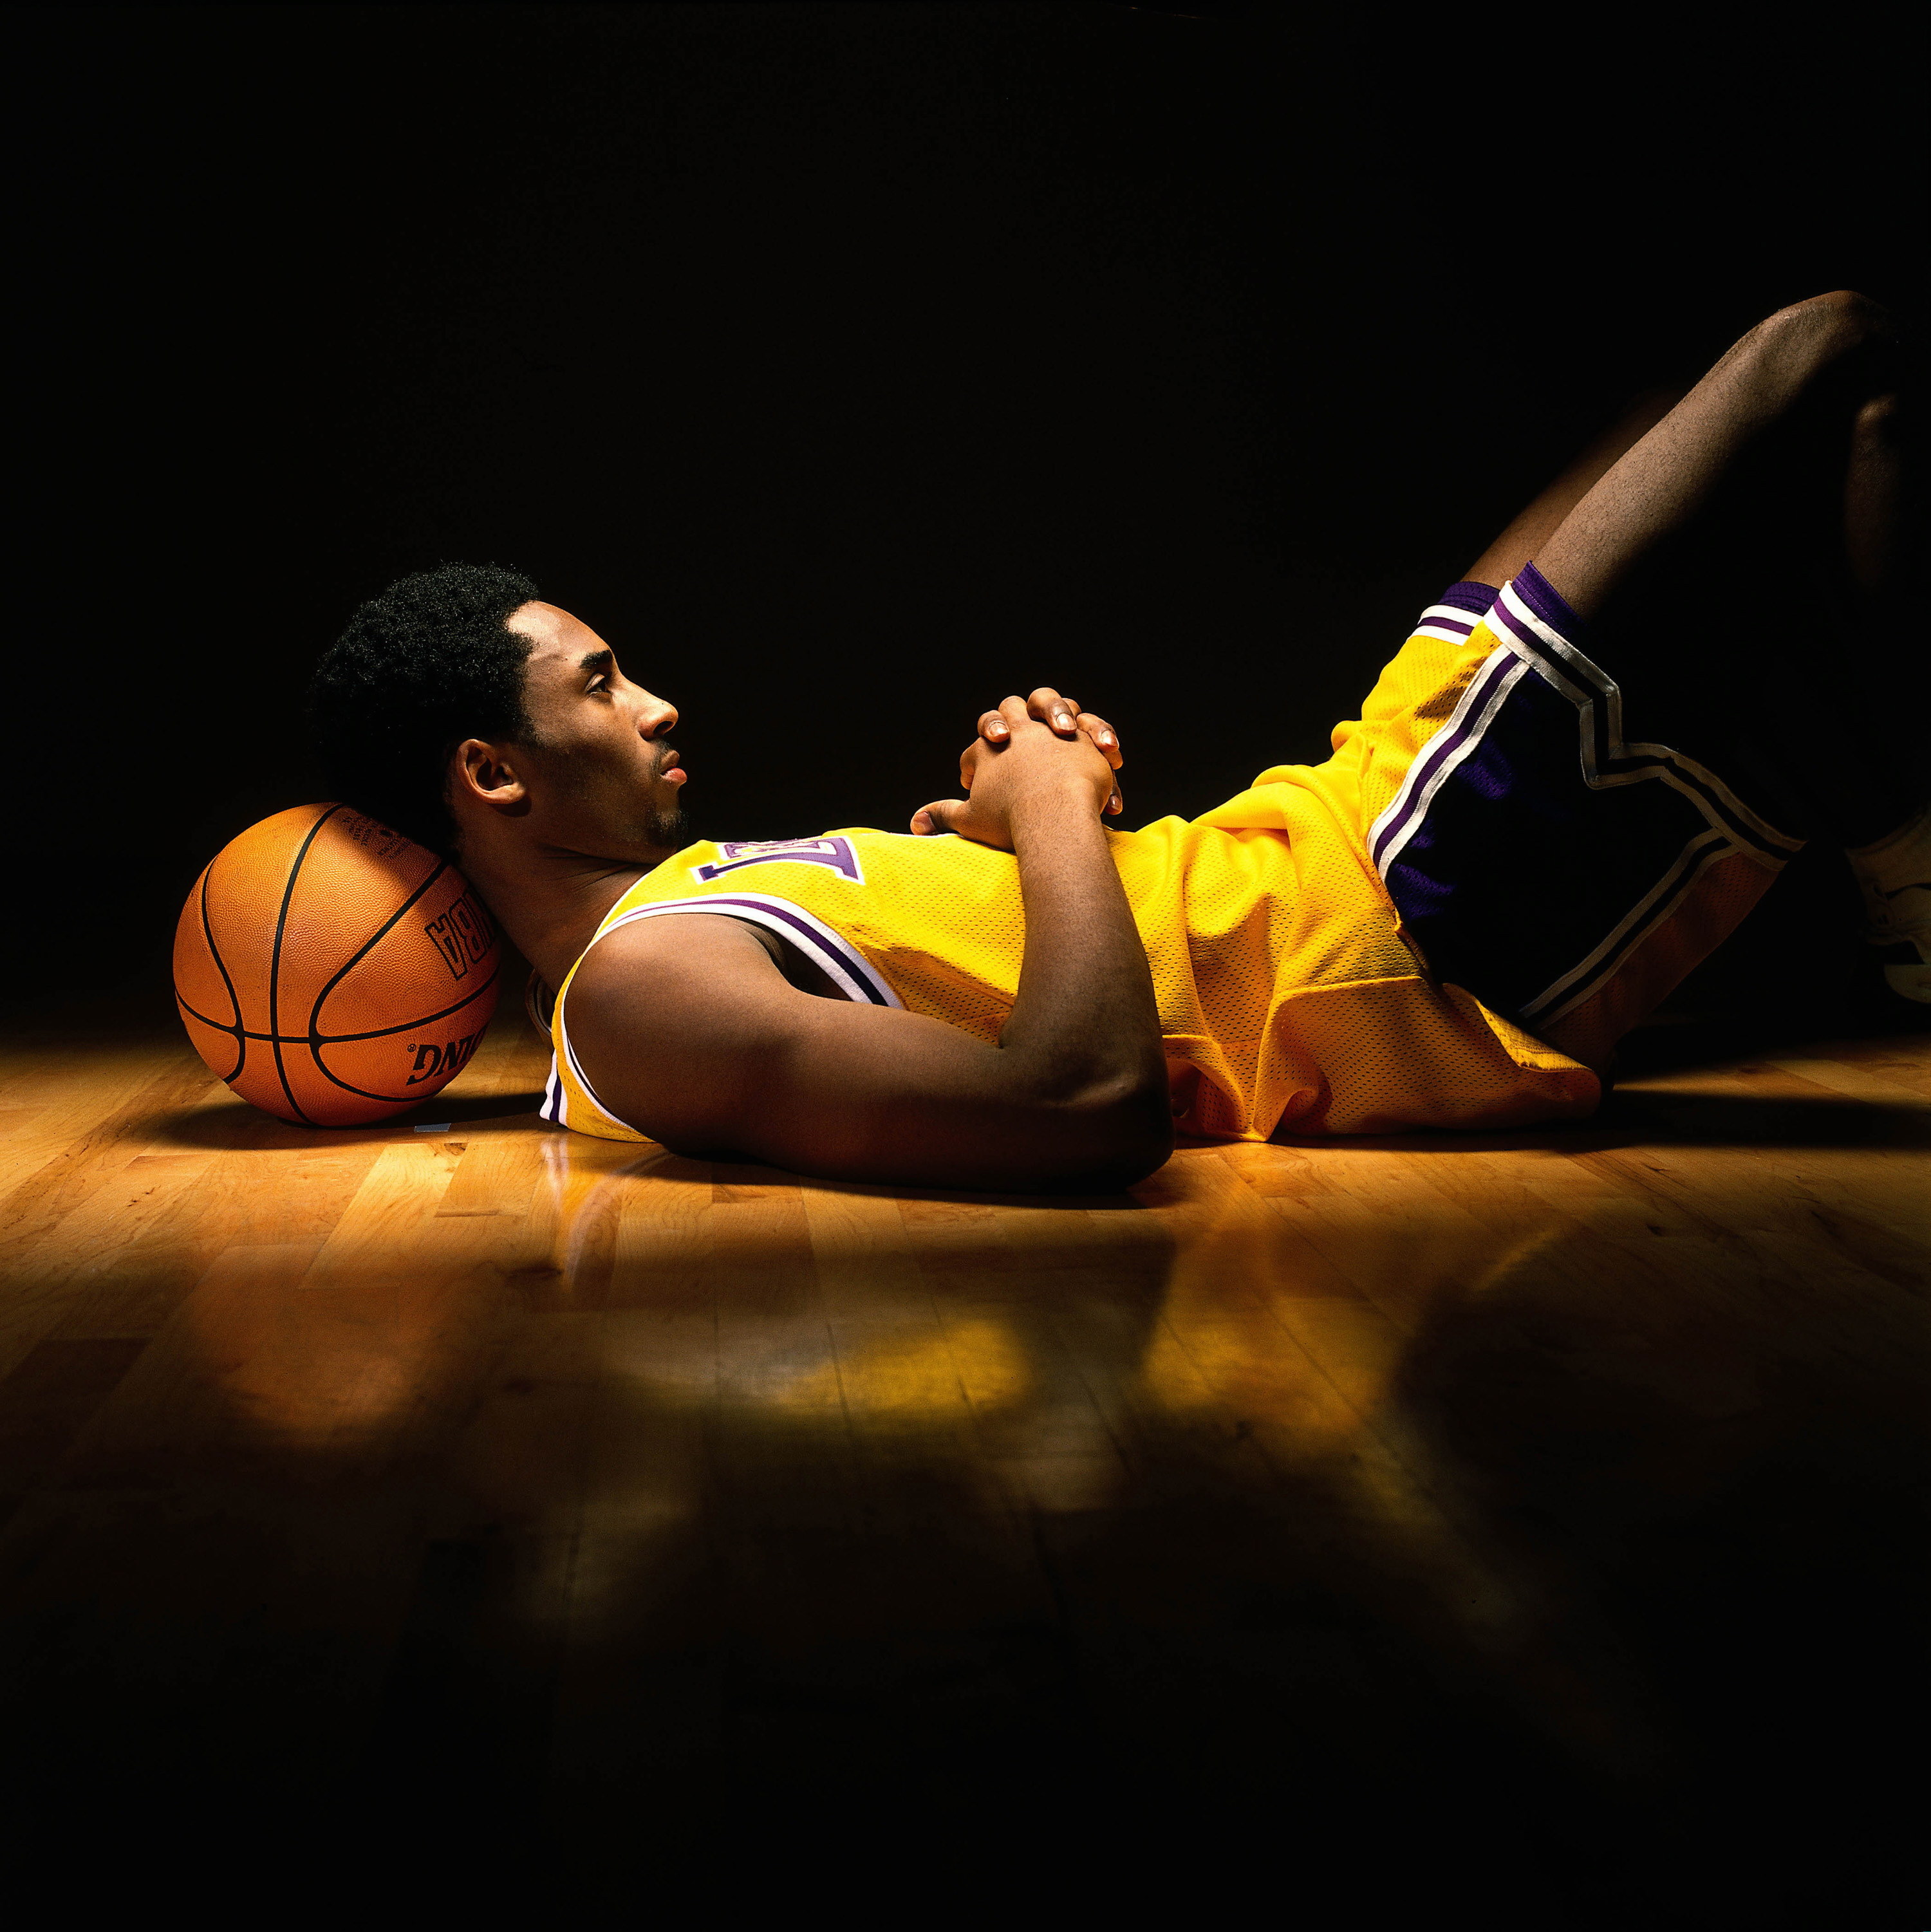 kobe-bryant-naked-pics-hot-fat-black-porn-pictures